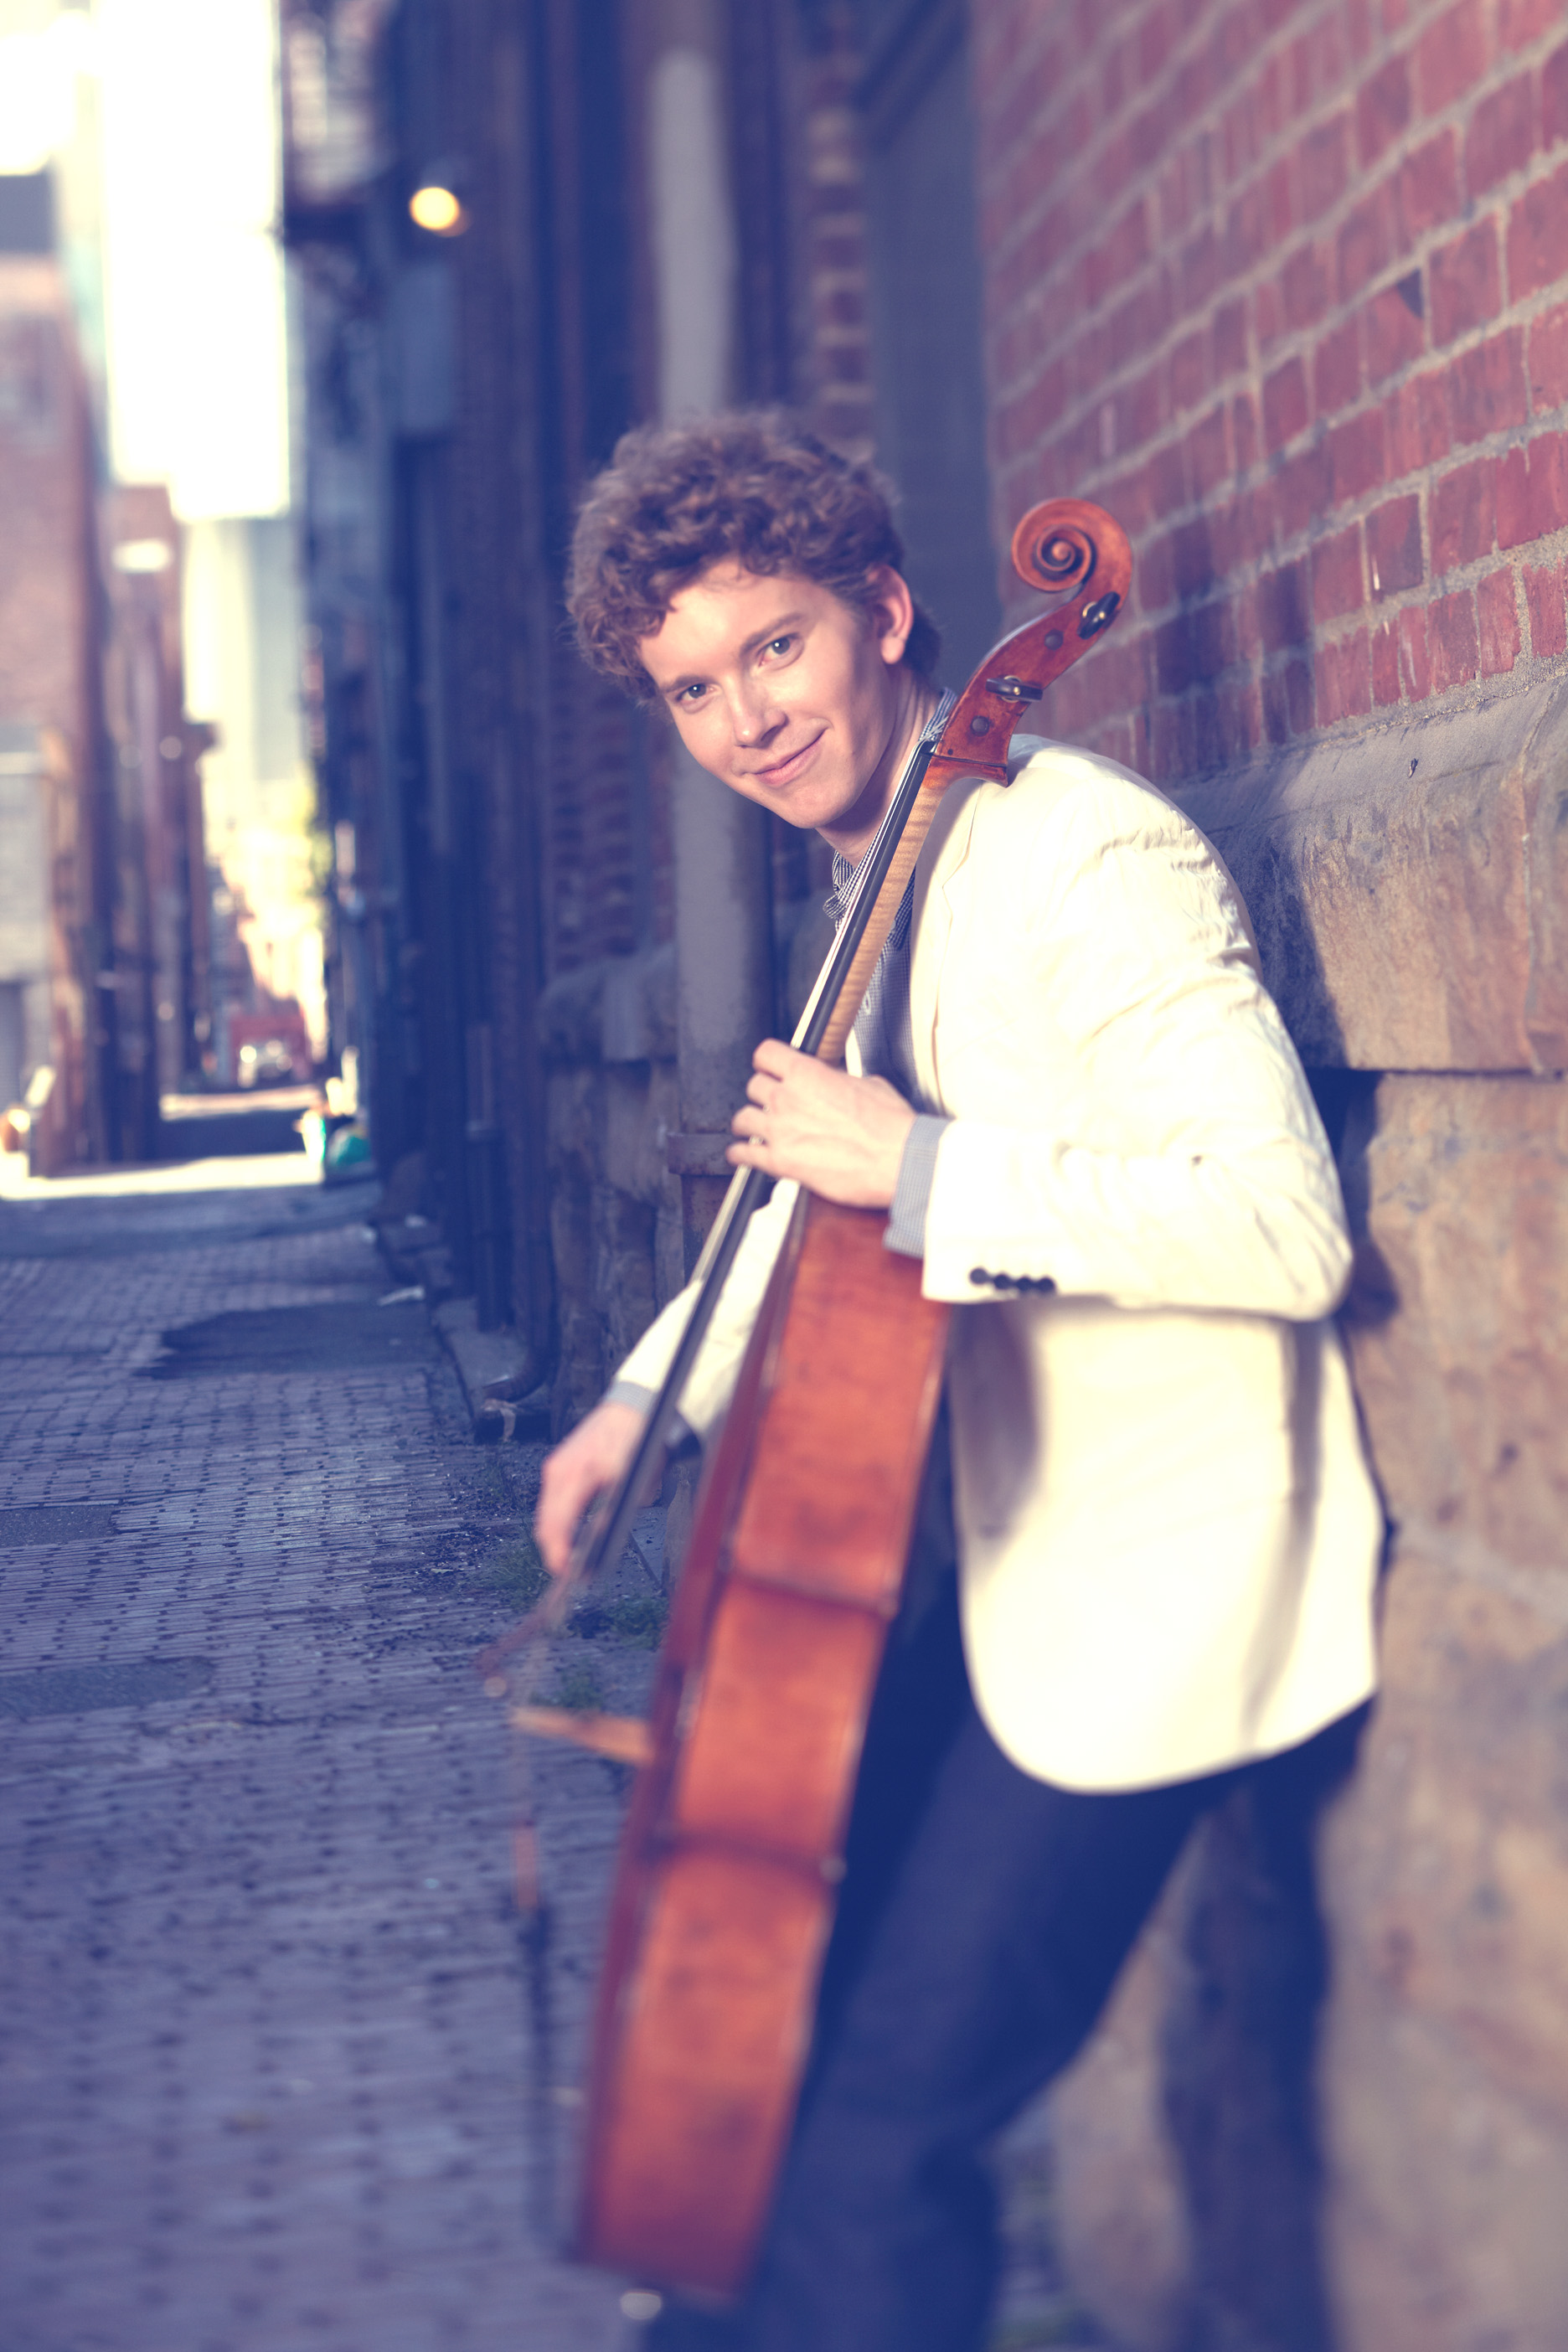 bachs unaccompanied suites for cello Bach's six suites for unaccompanied cello date from about 1720, when the composer was serving as kapellmeister at the court of anhalt-cöthen,.